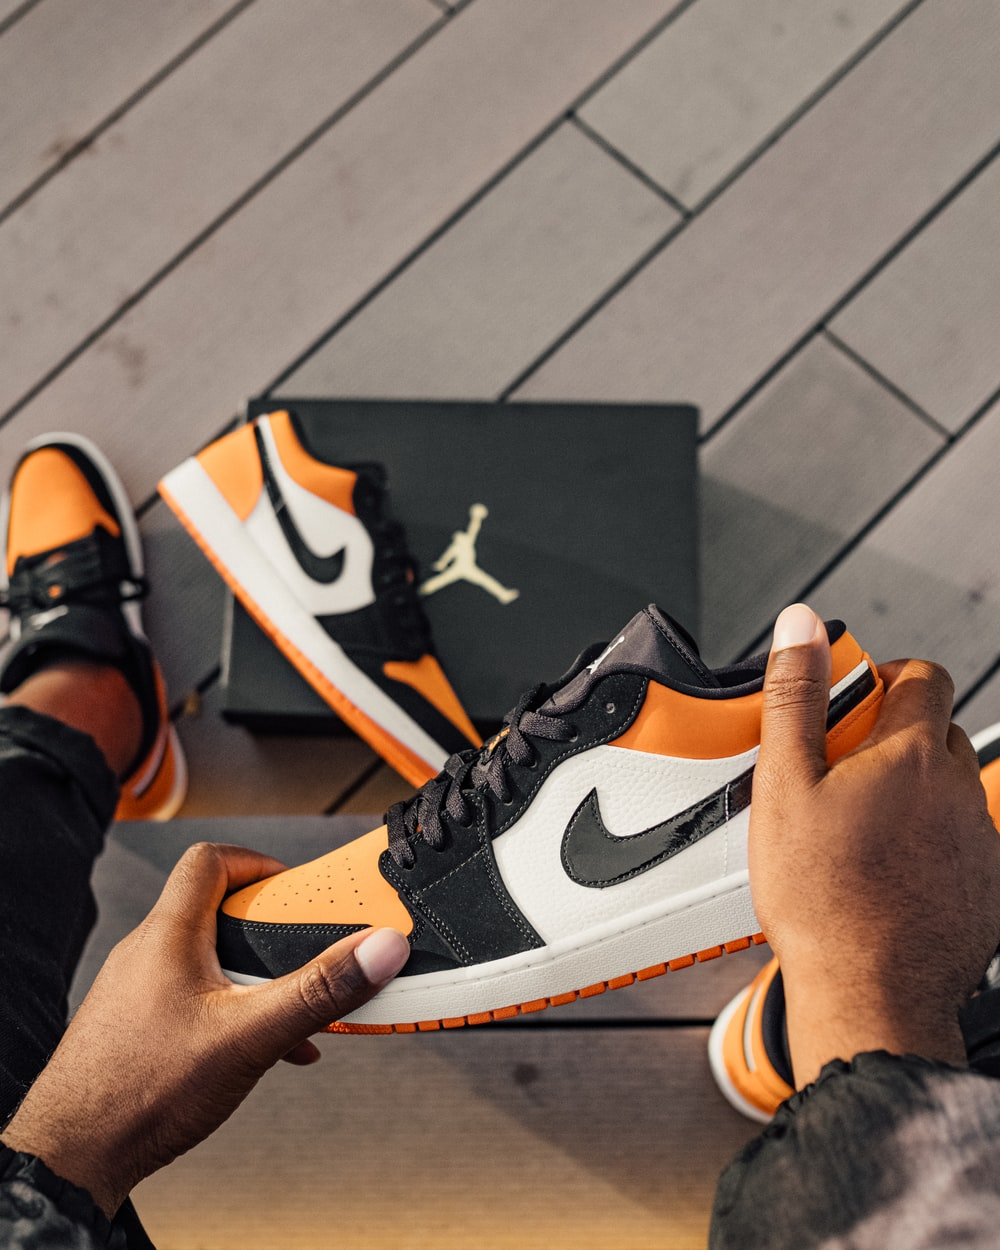 person sitting and holding white, orange, and black Air Jordan 1 low-top sneaker